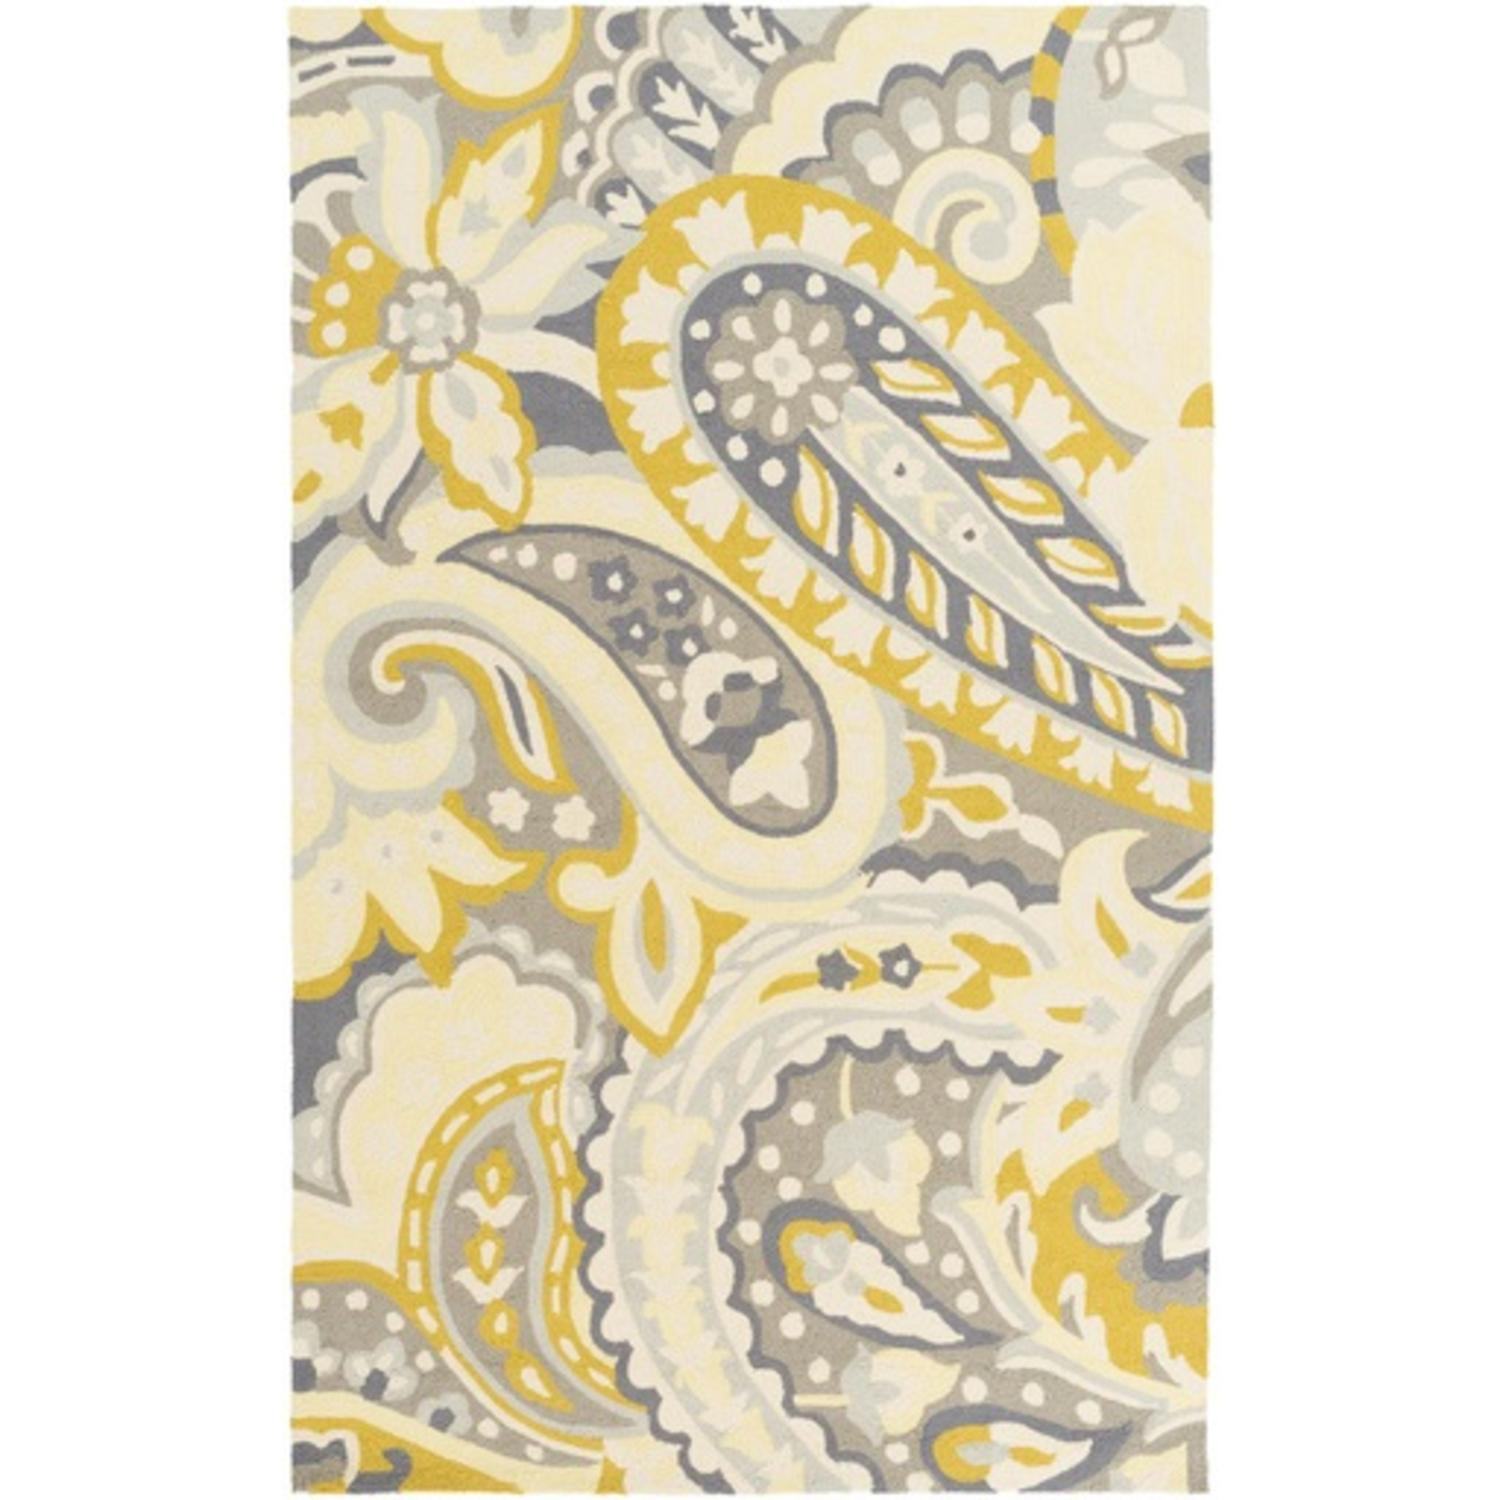 3u0027 X 5u0027 Paisley Splash Beige, Yellow, And Light Gray Hand Hooked